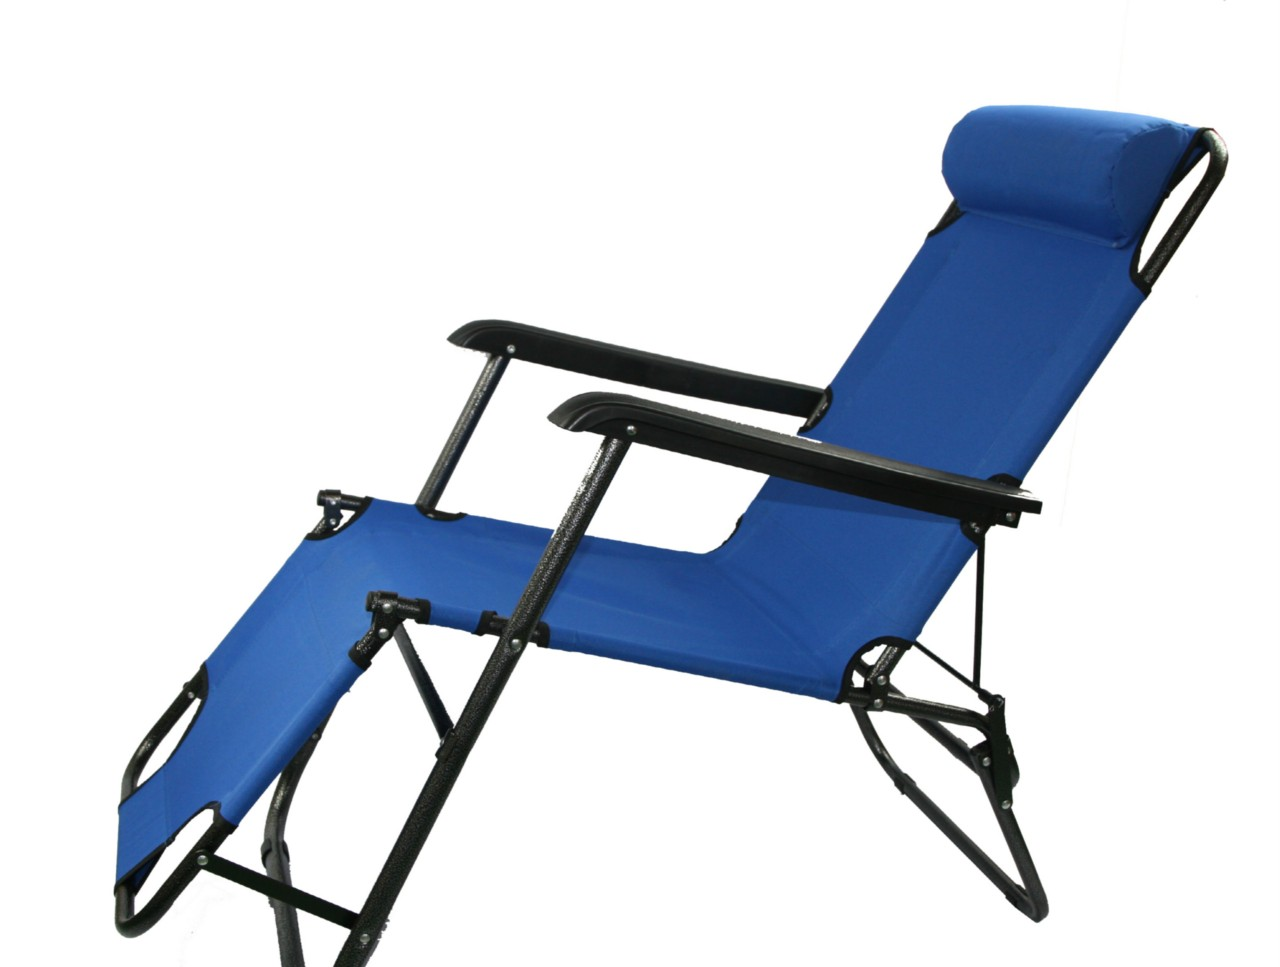 Folding Lounge Beach Chair New Light Portable Folding Recliner Outdoor Lounge Chair